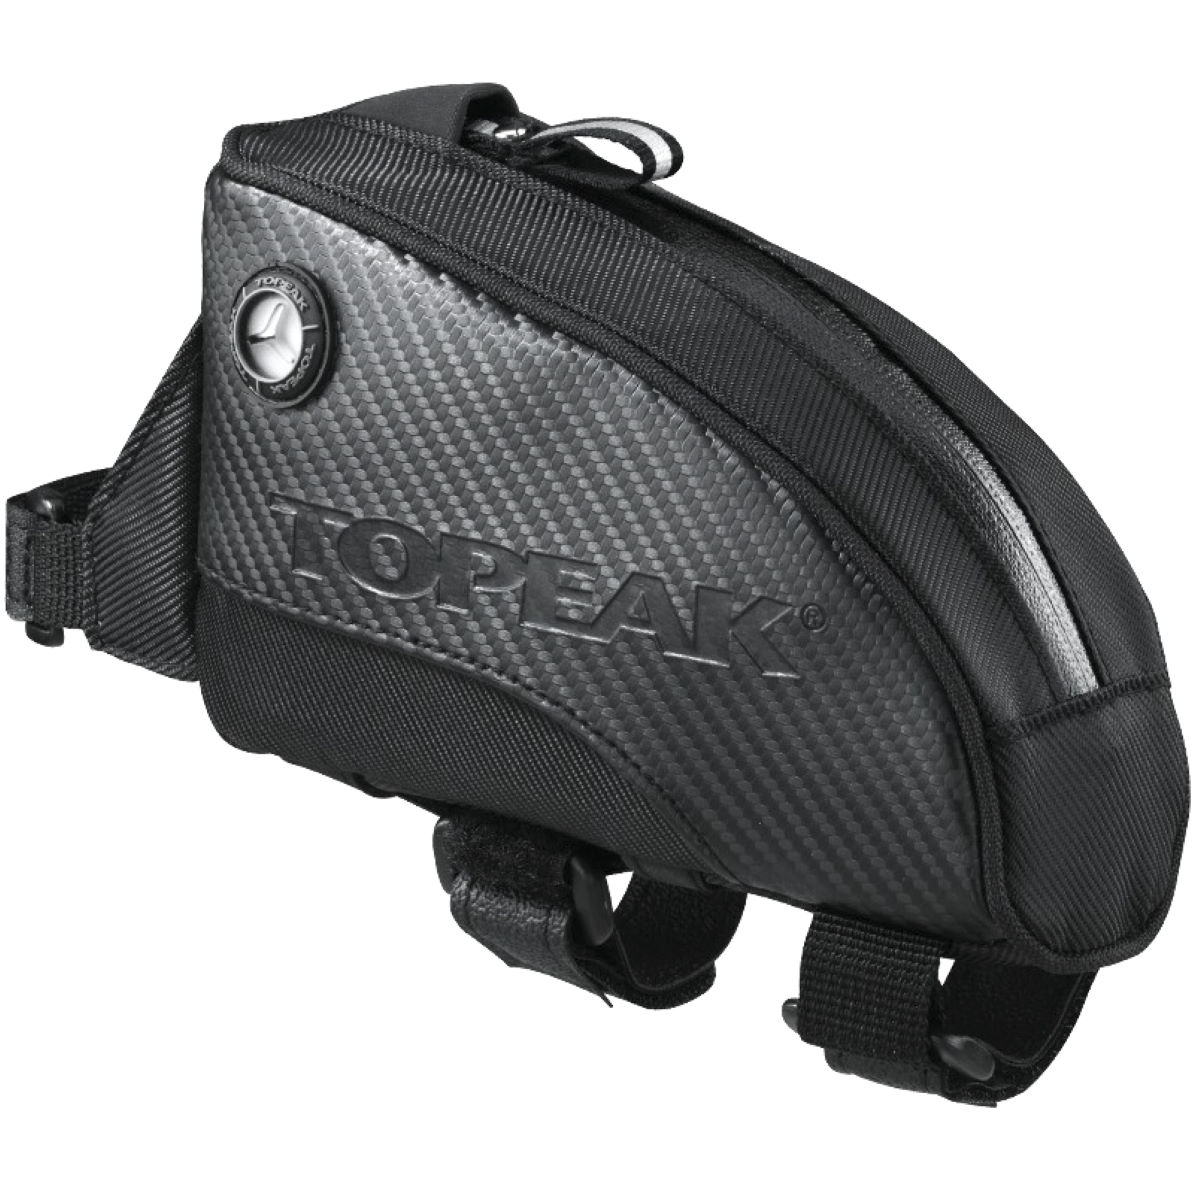 Topeak Topeak Fuel Tank Bag (Medium)   Top Tube Bags